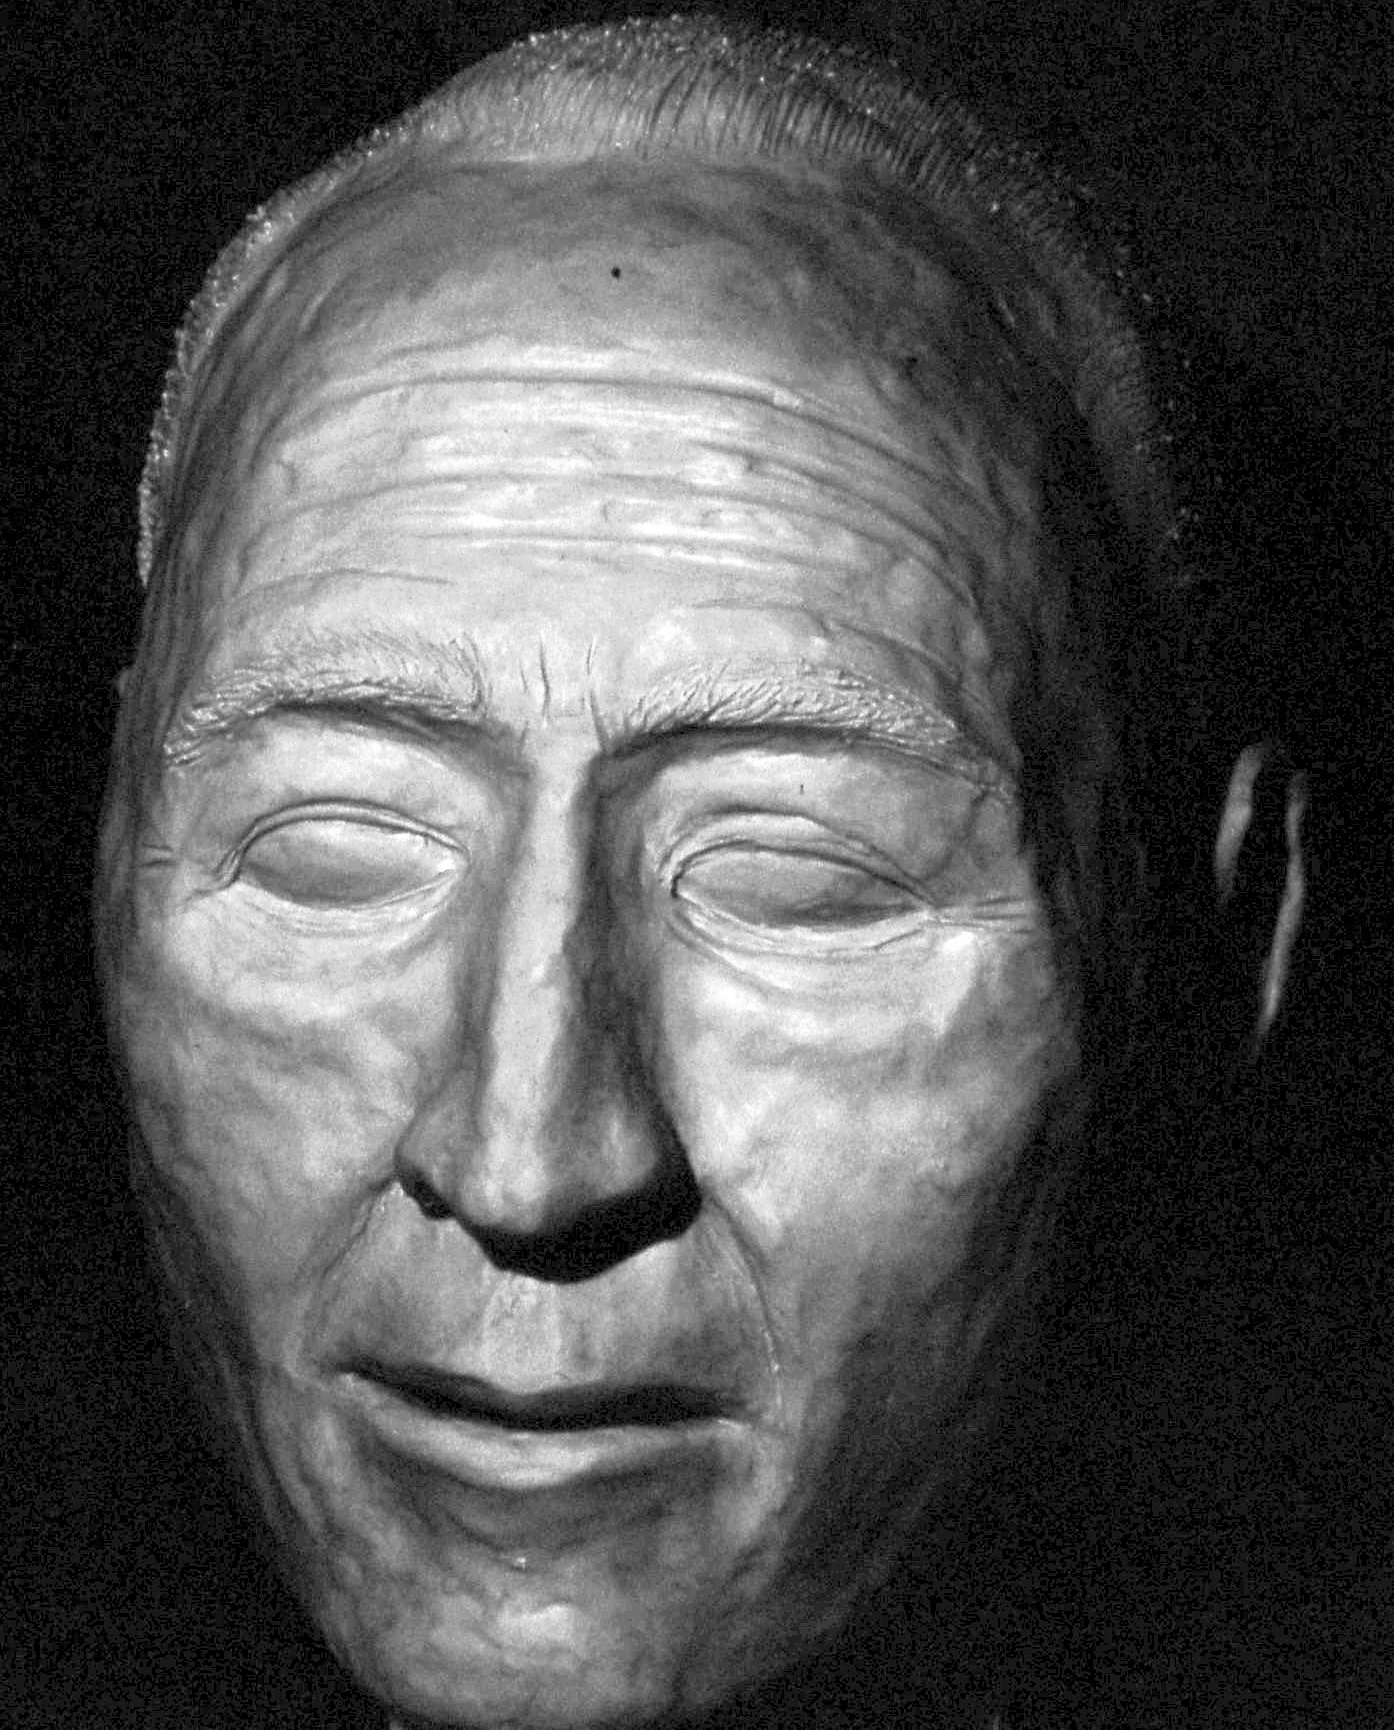 Coconino County John Doe (December 1, 1976)